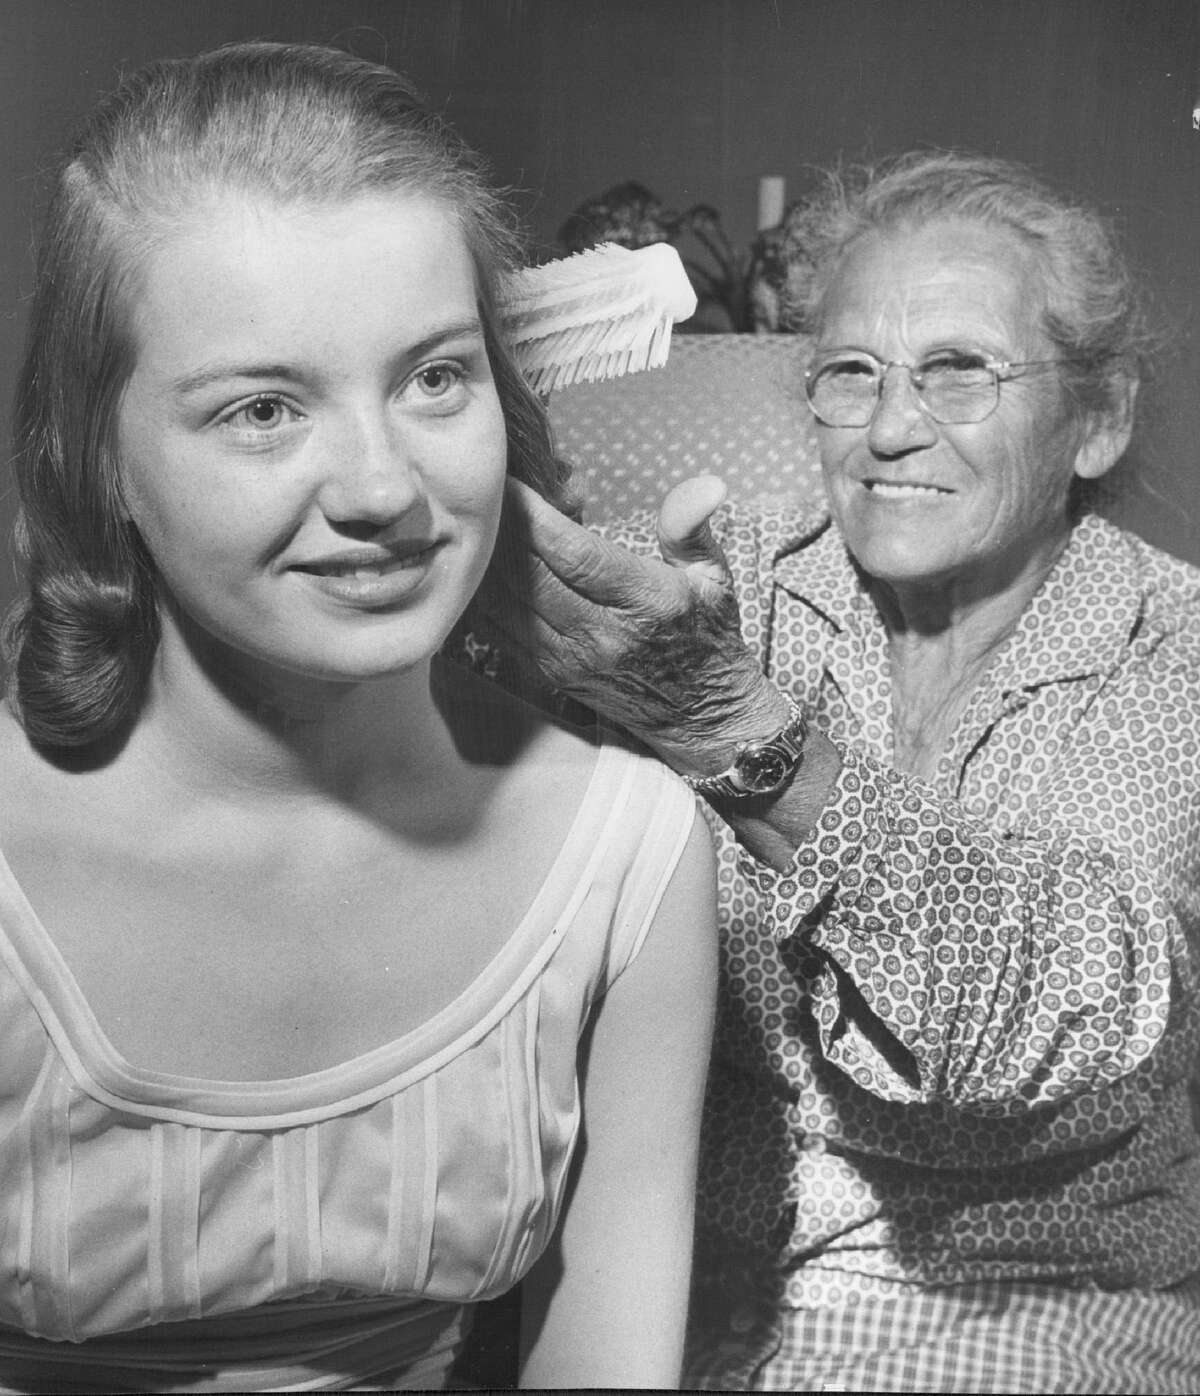 Emma Gatewood, a great-grandmother who hiked from Missouri to Oregon, stops in Denver. While staying with a family there, she combed the hair of Donna Baldwin, 15.